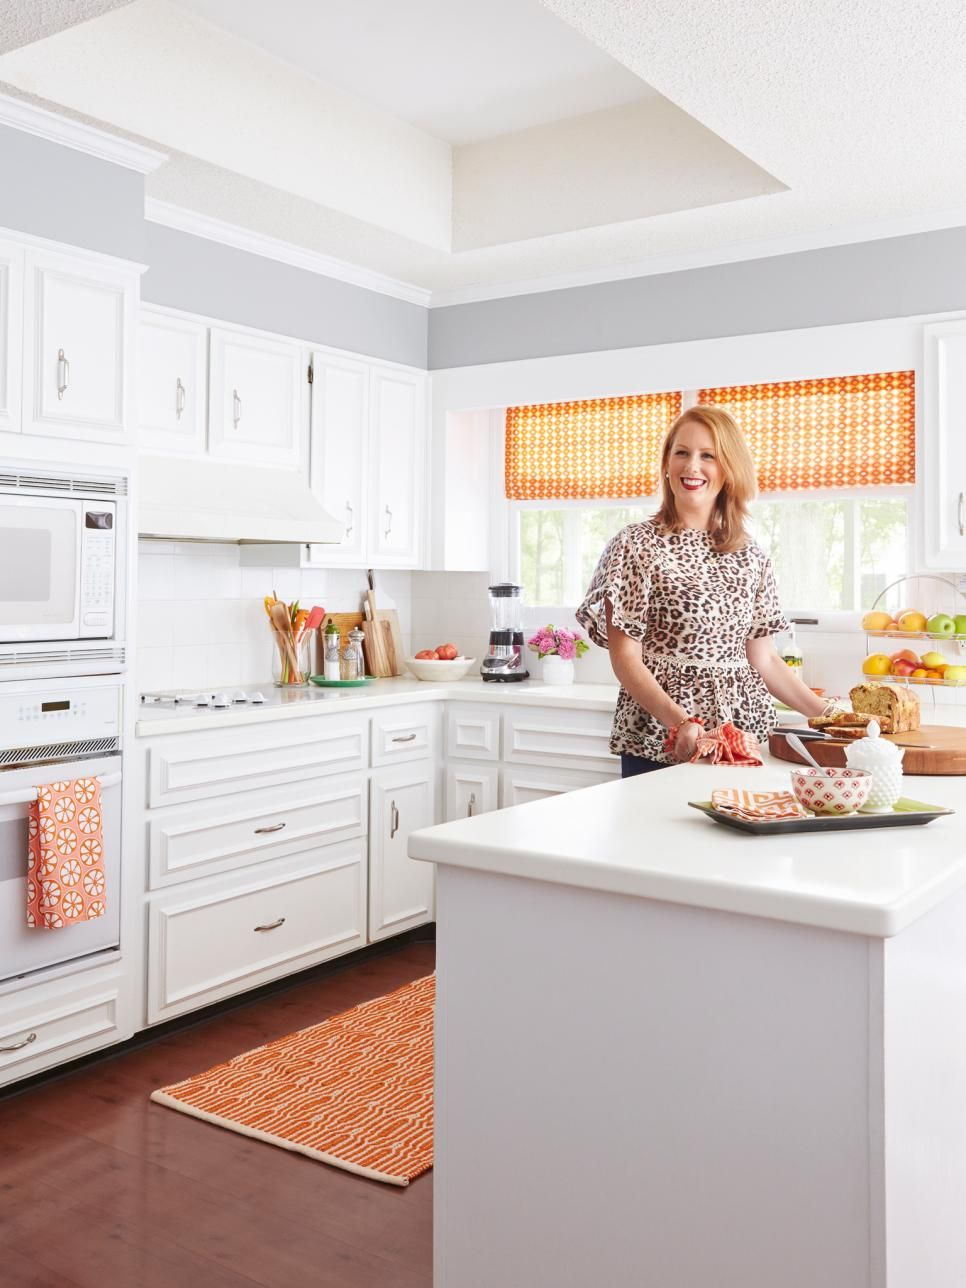 classic and quirky decorating ideas kitchen cabinet colors painting oak cabinets painting on kitchen ideas quirky id=57210